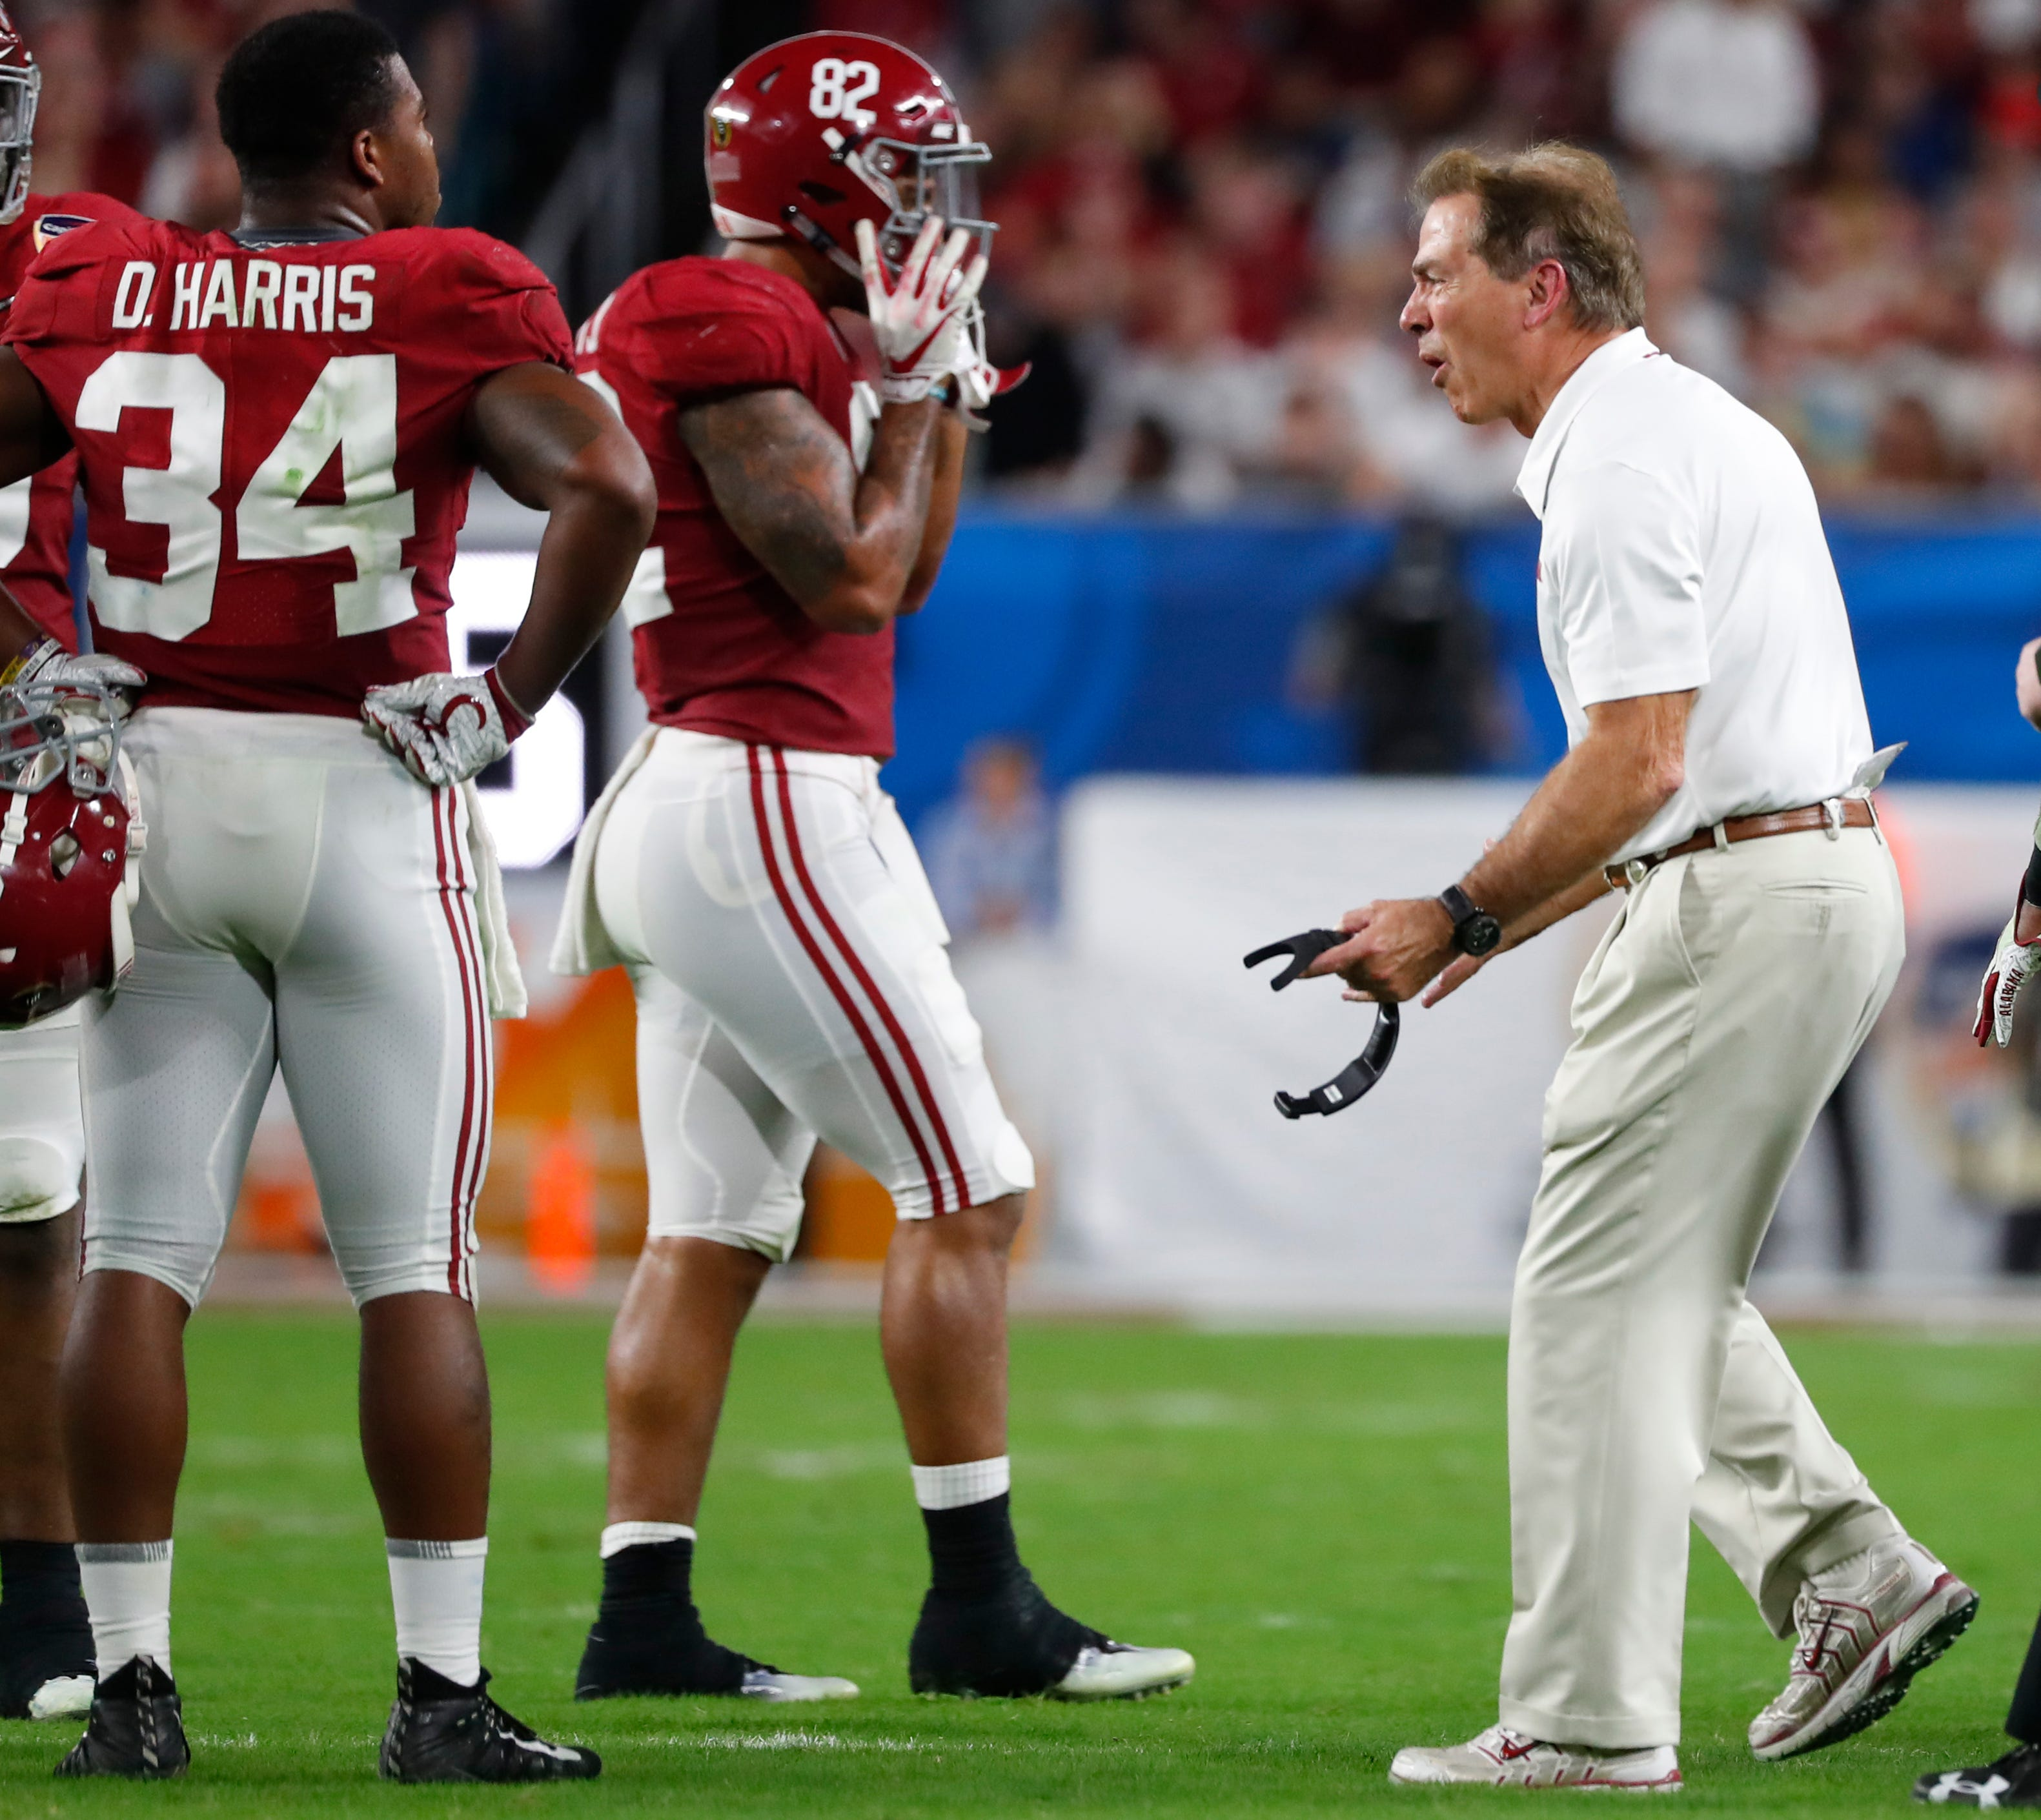 College Football Playoff: Bama and Clemson again for title